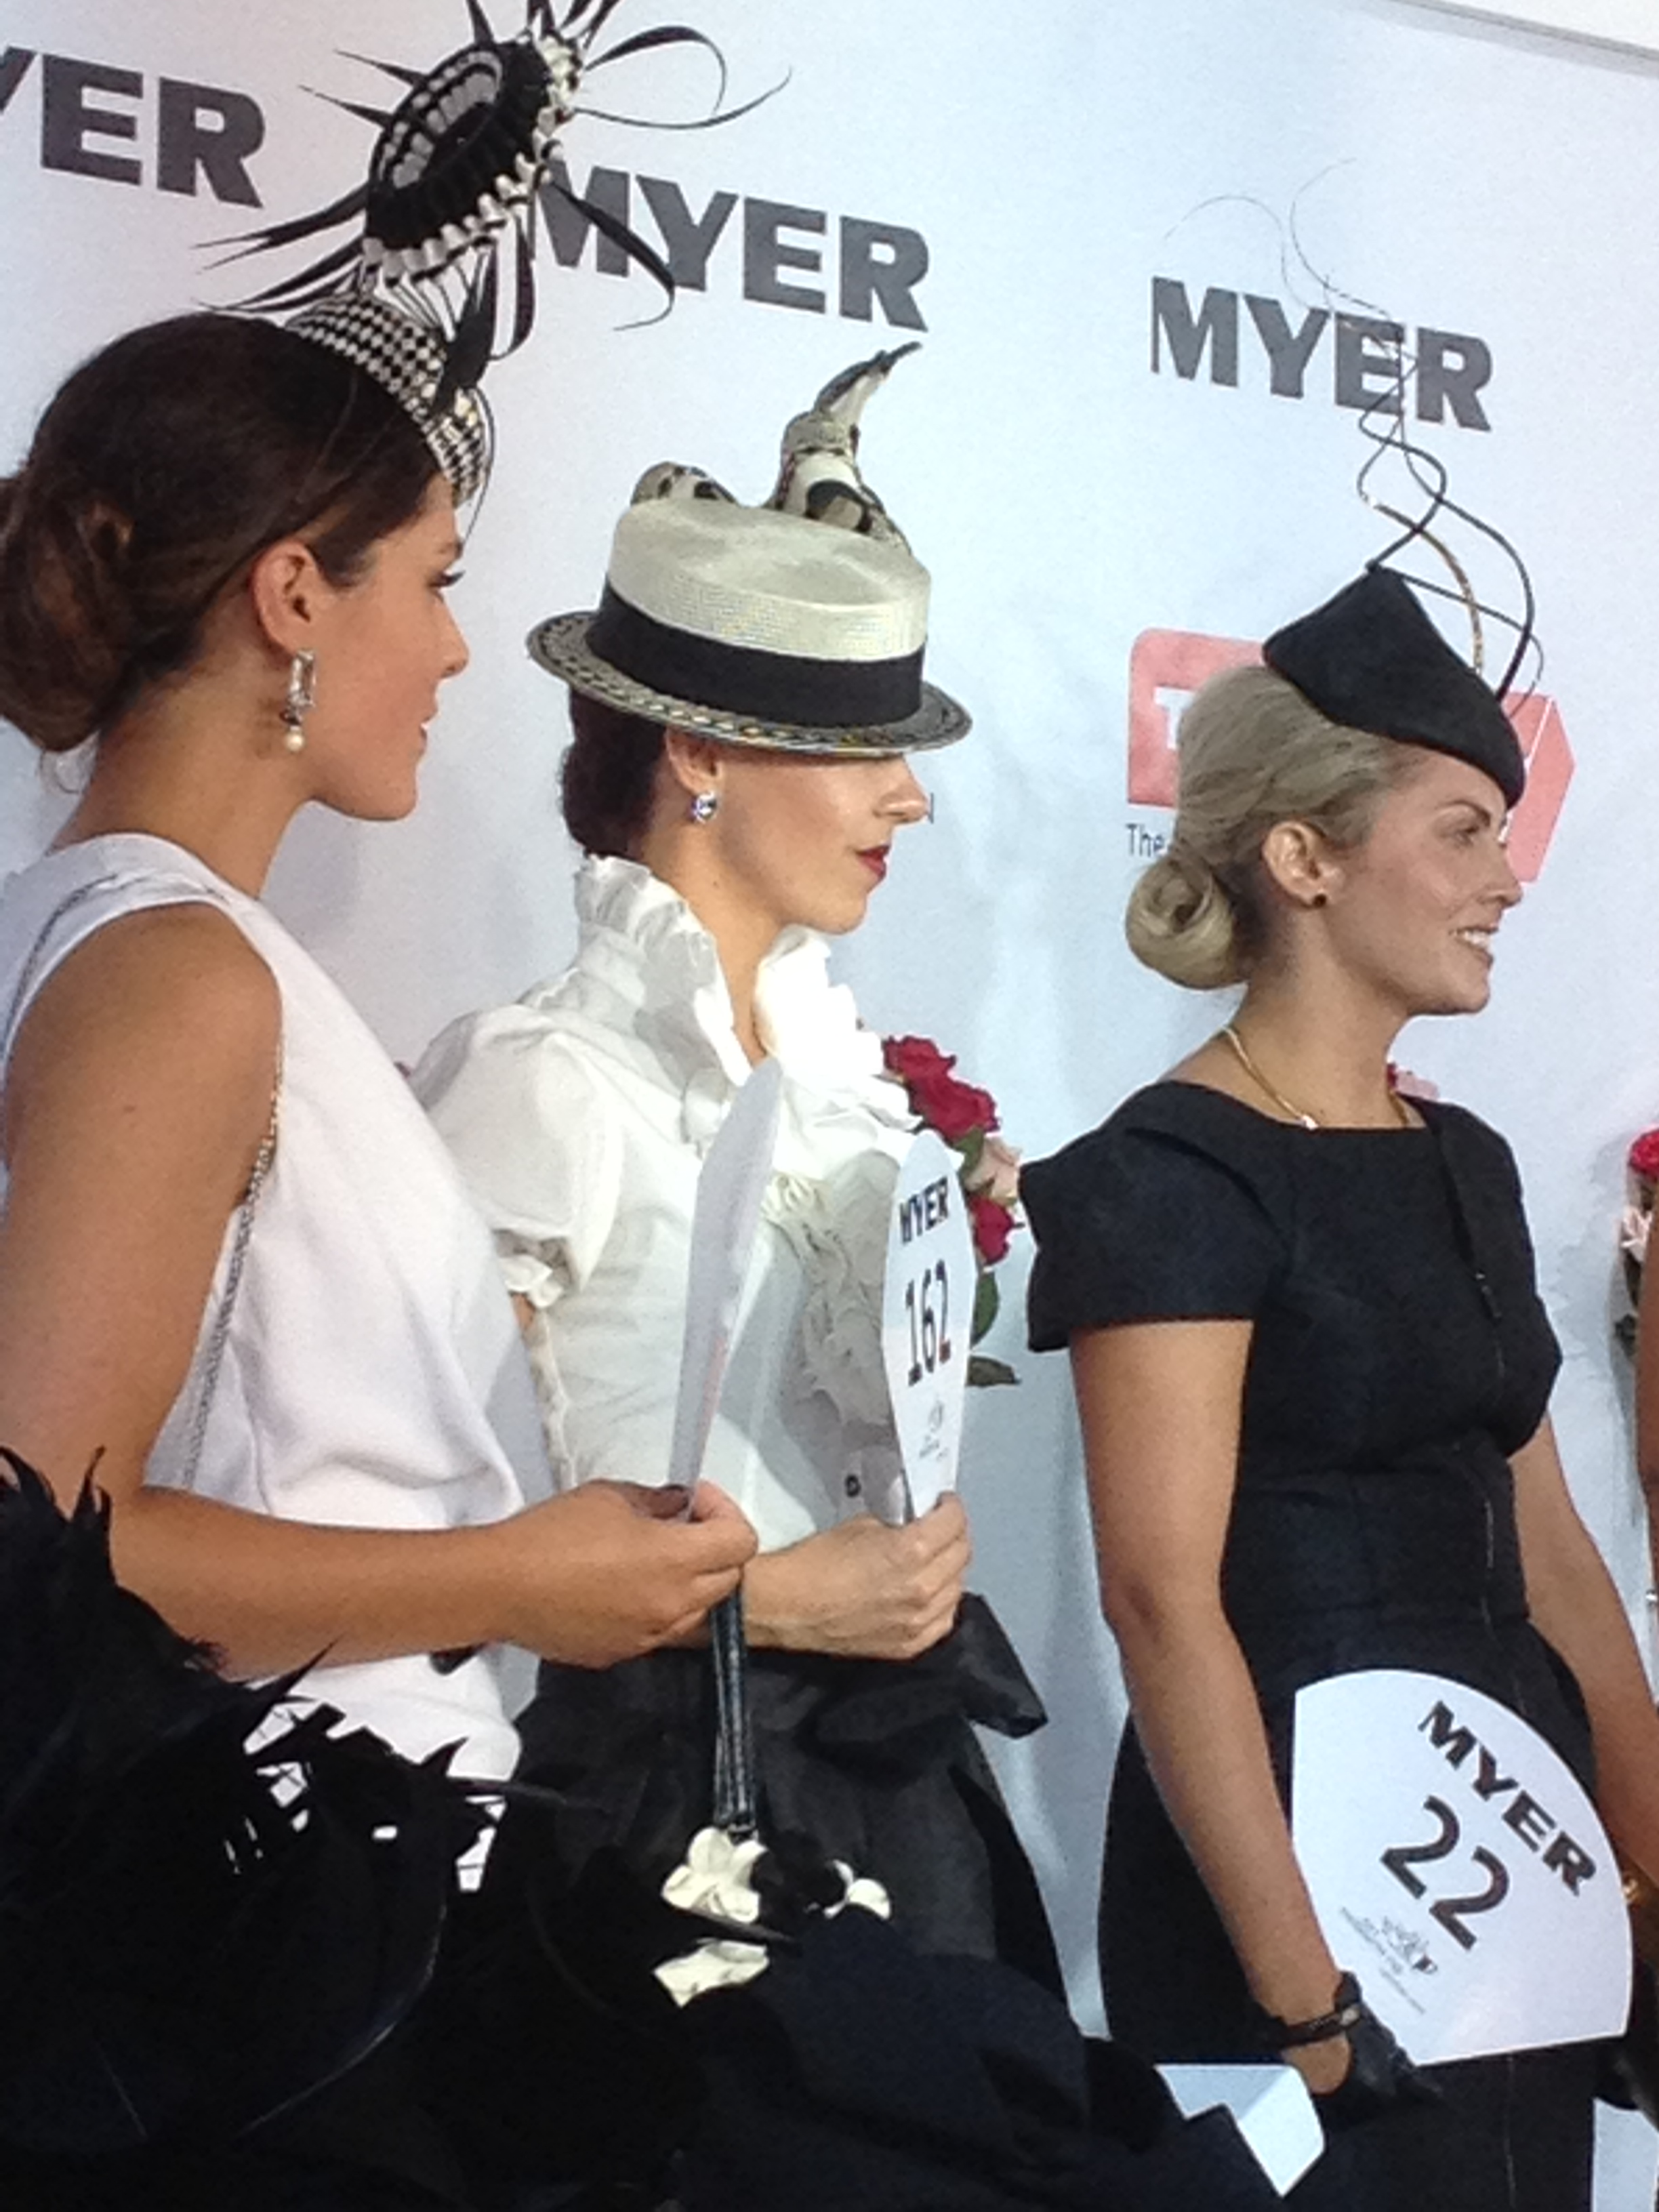 Melbourne Cup Carnival – Derby Day! – A Red Lip And A Nude Shoe